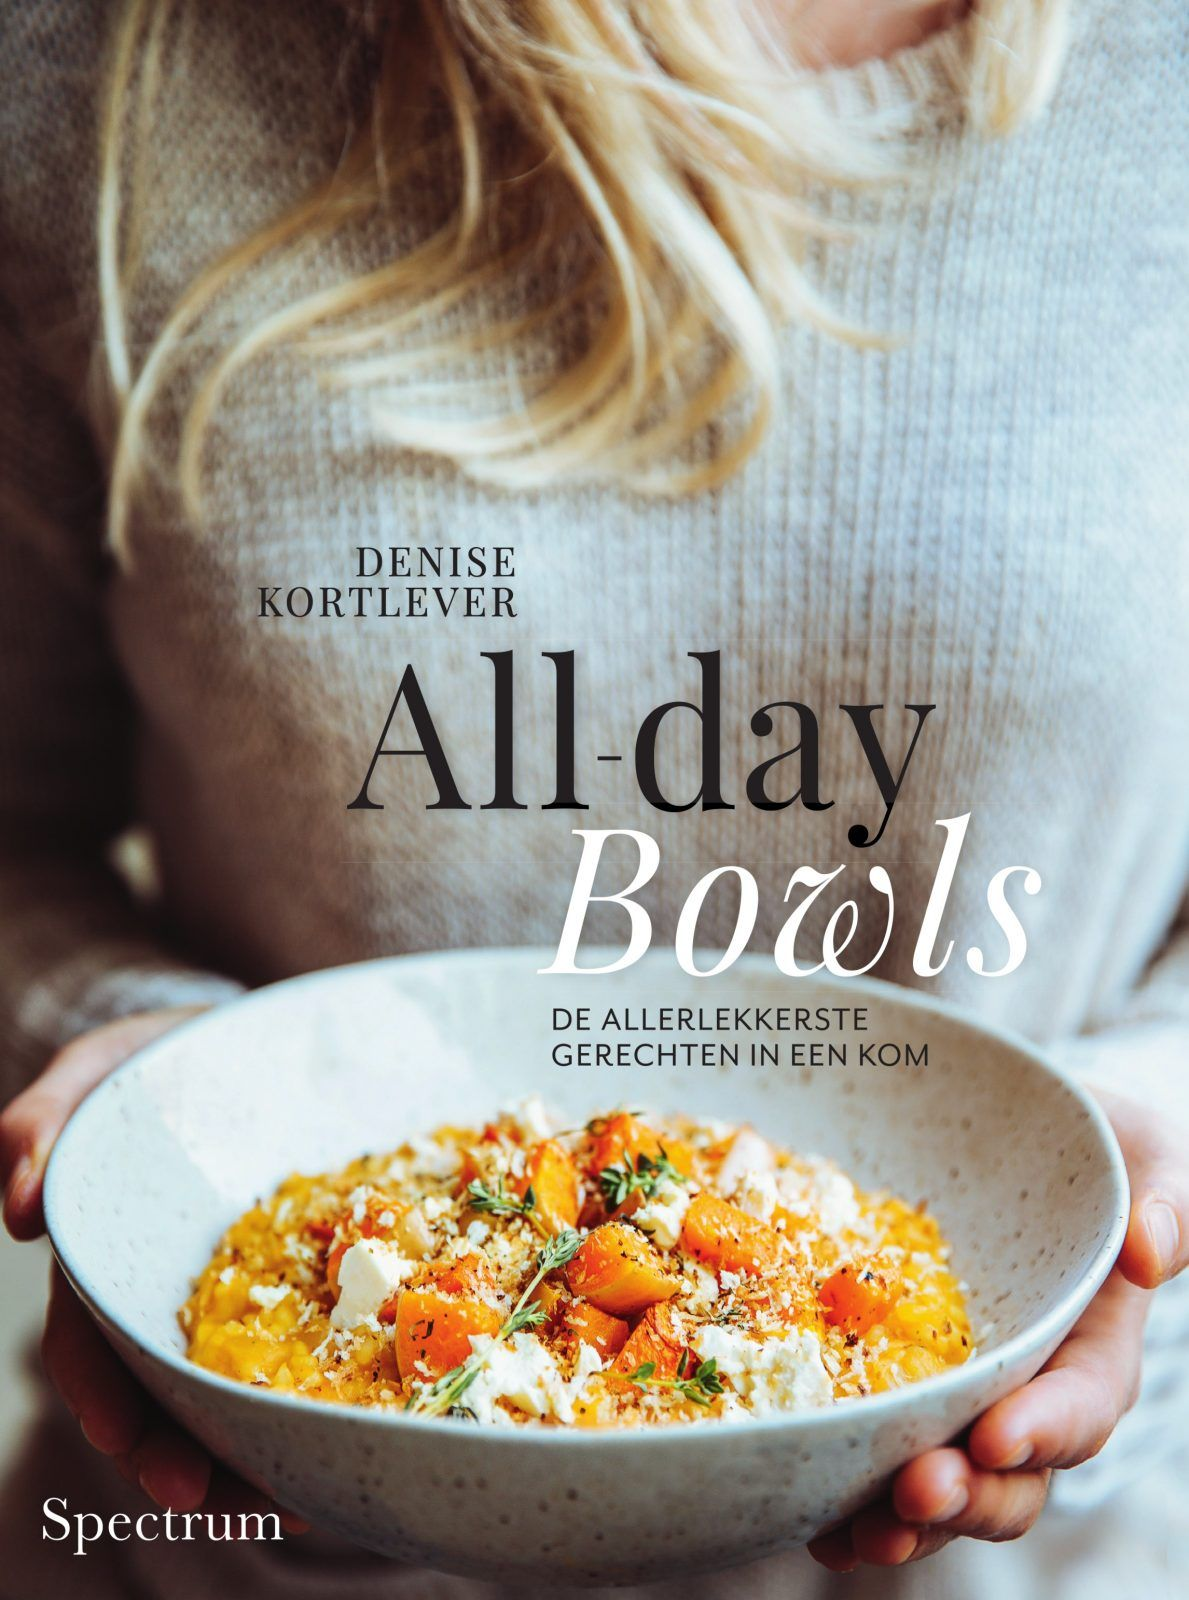 all-day bowls, denise kortlever